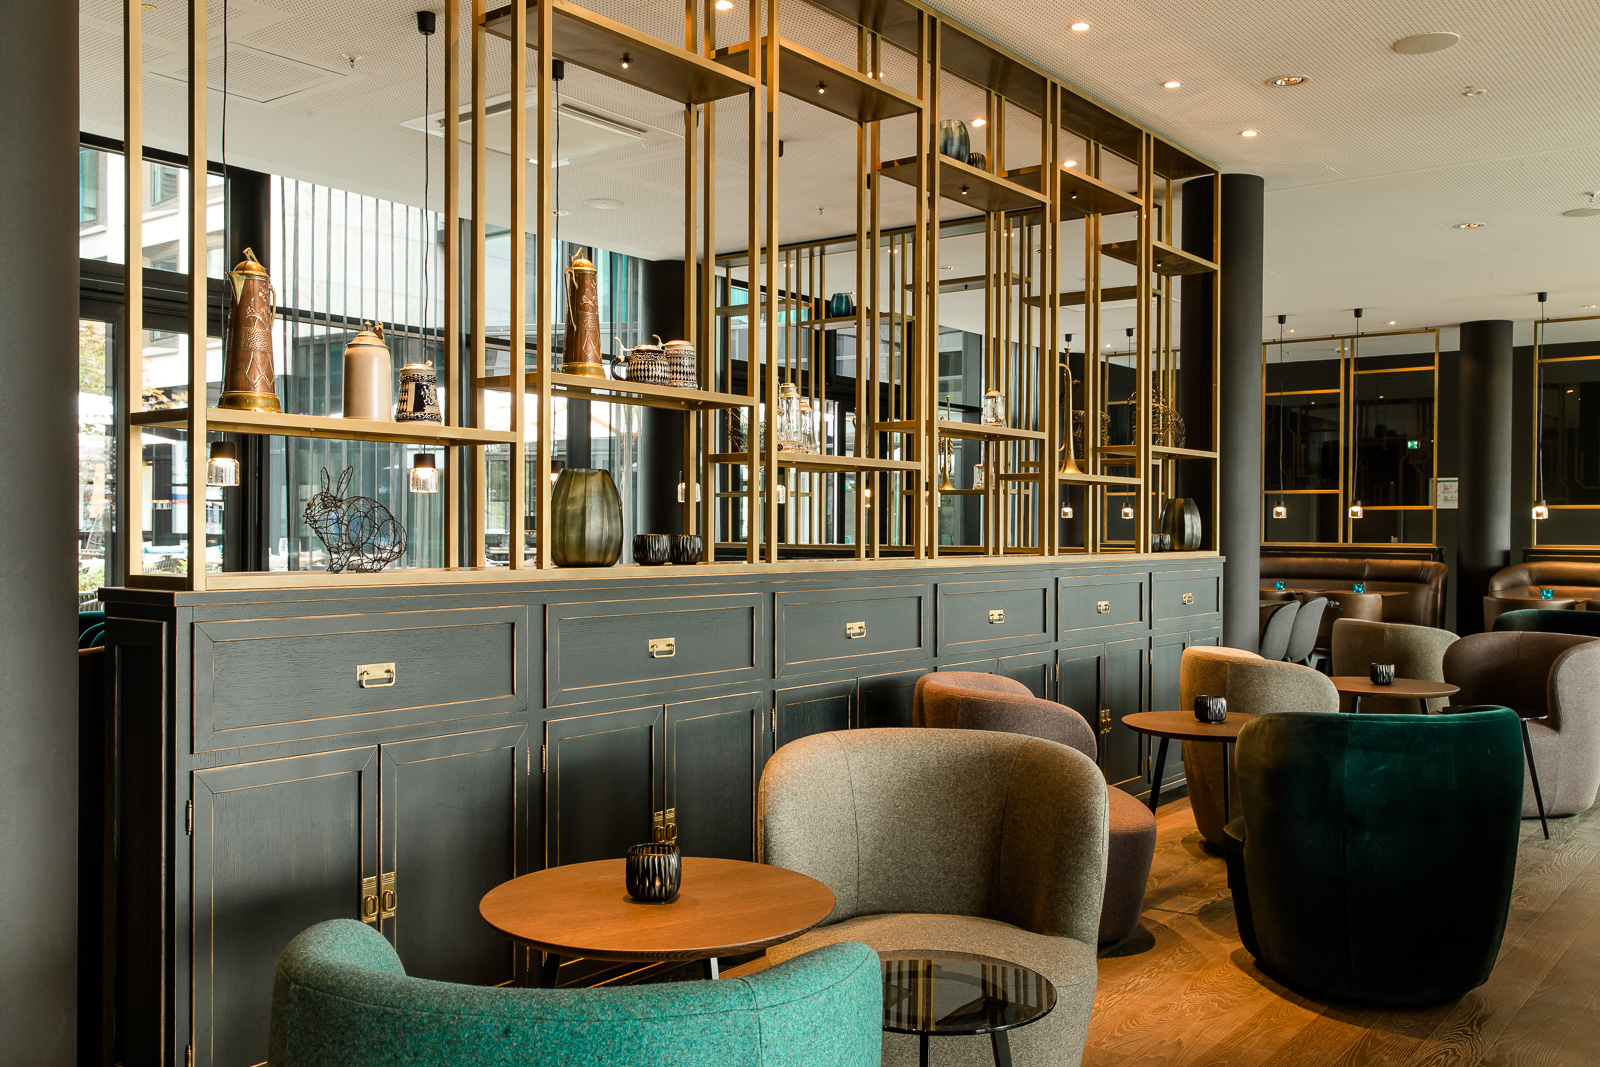 Motel One Lounge Sessel Kaufen And Yet Another Motel One Has Opened In Munich Kamper